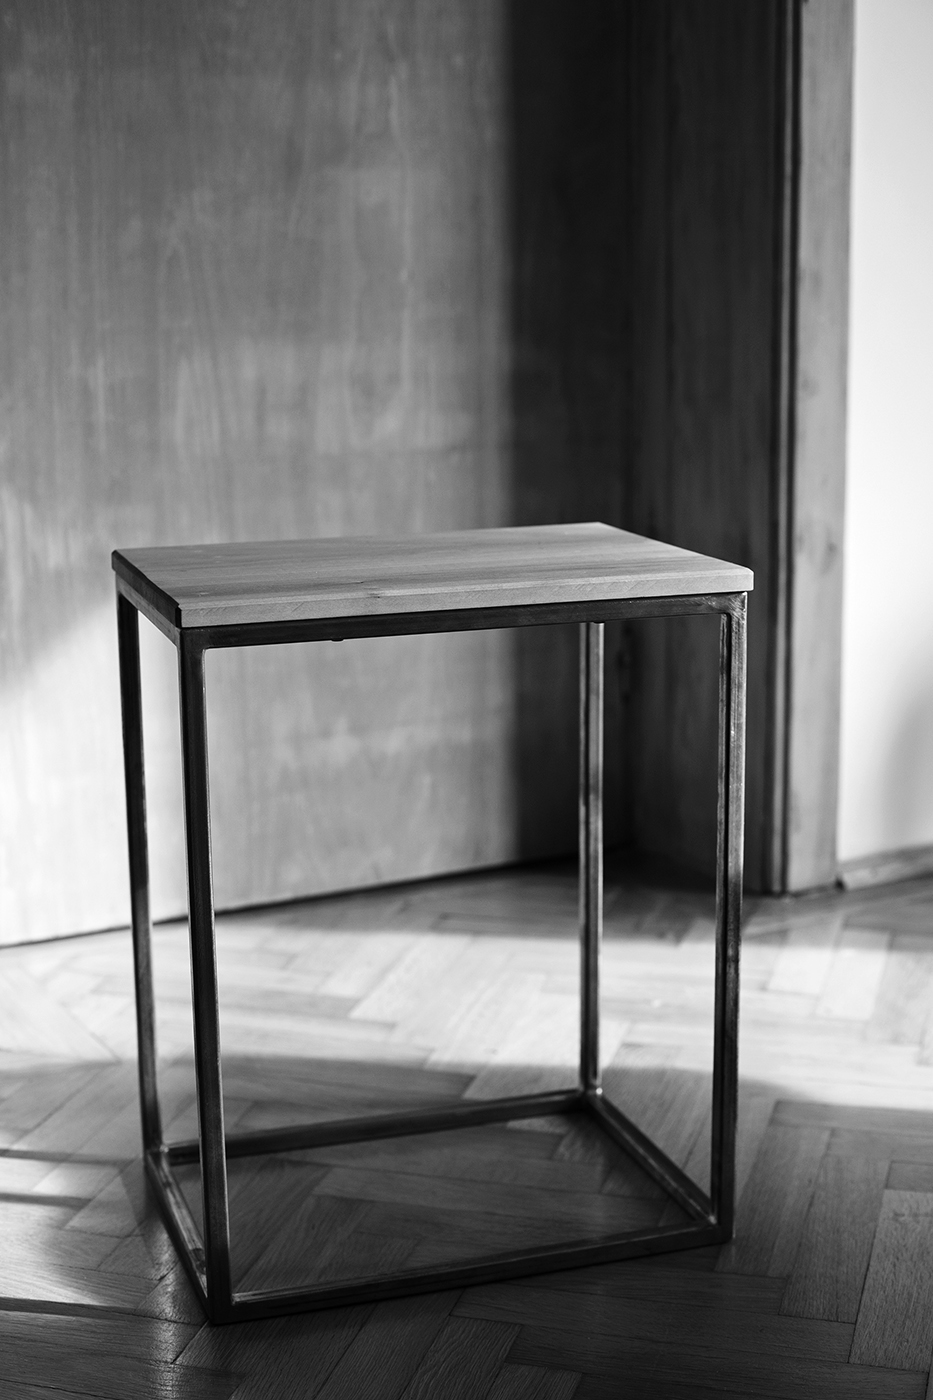 First object ever made by Atelier Mustata